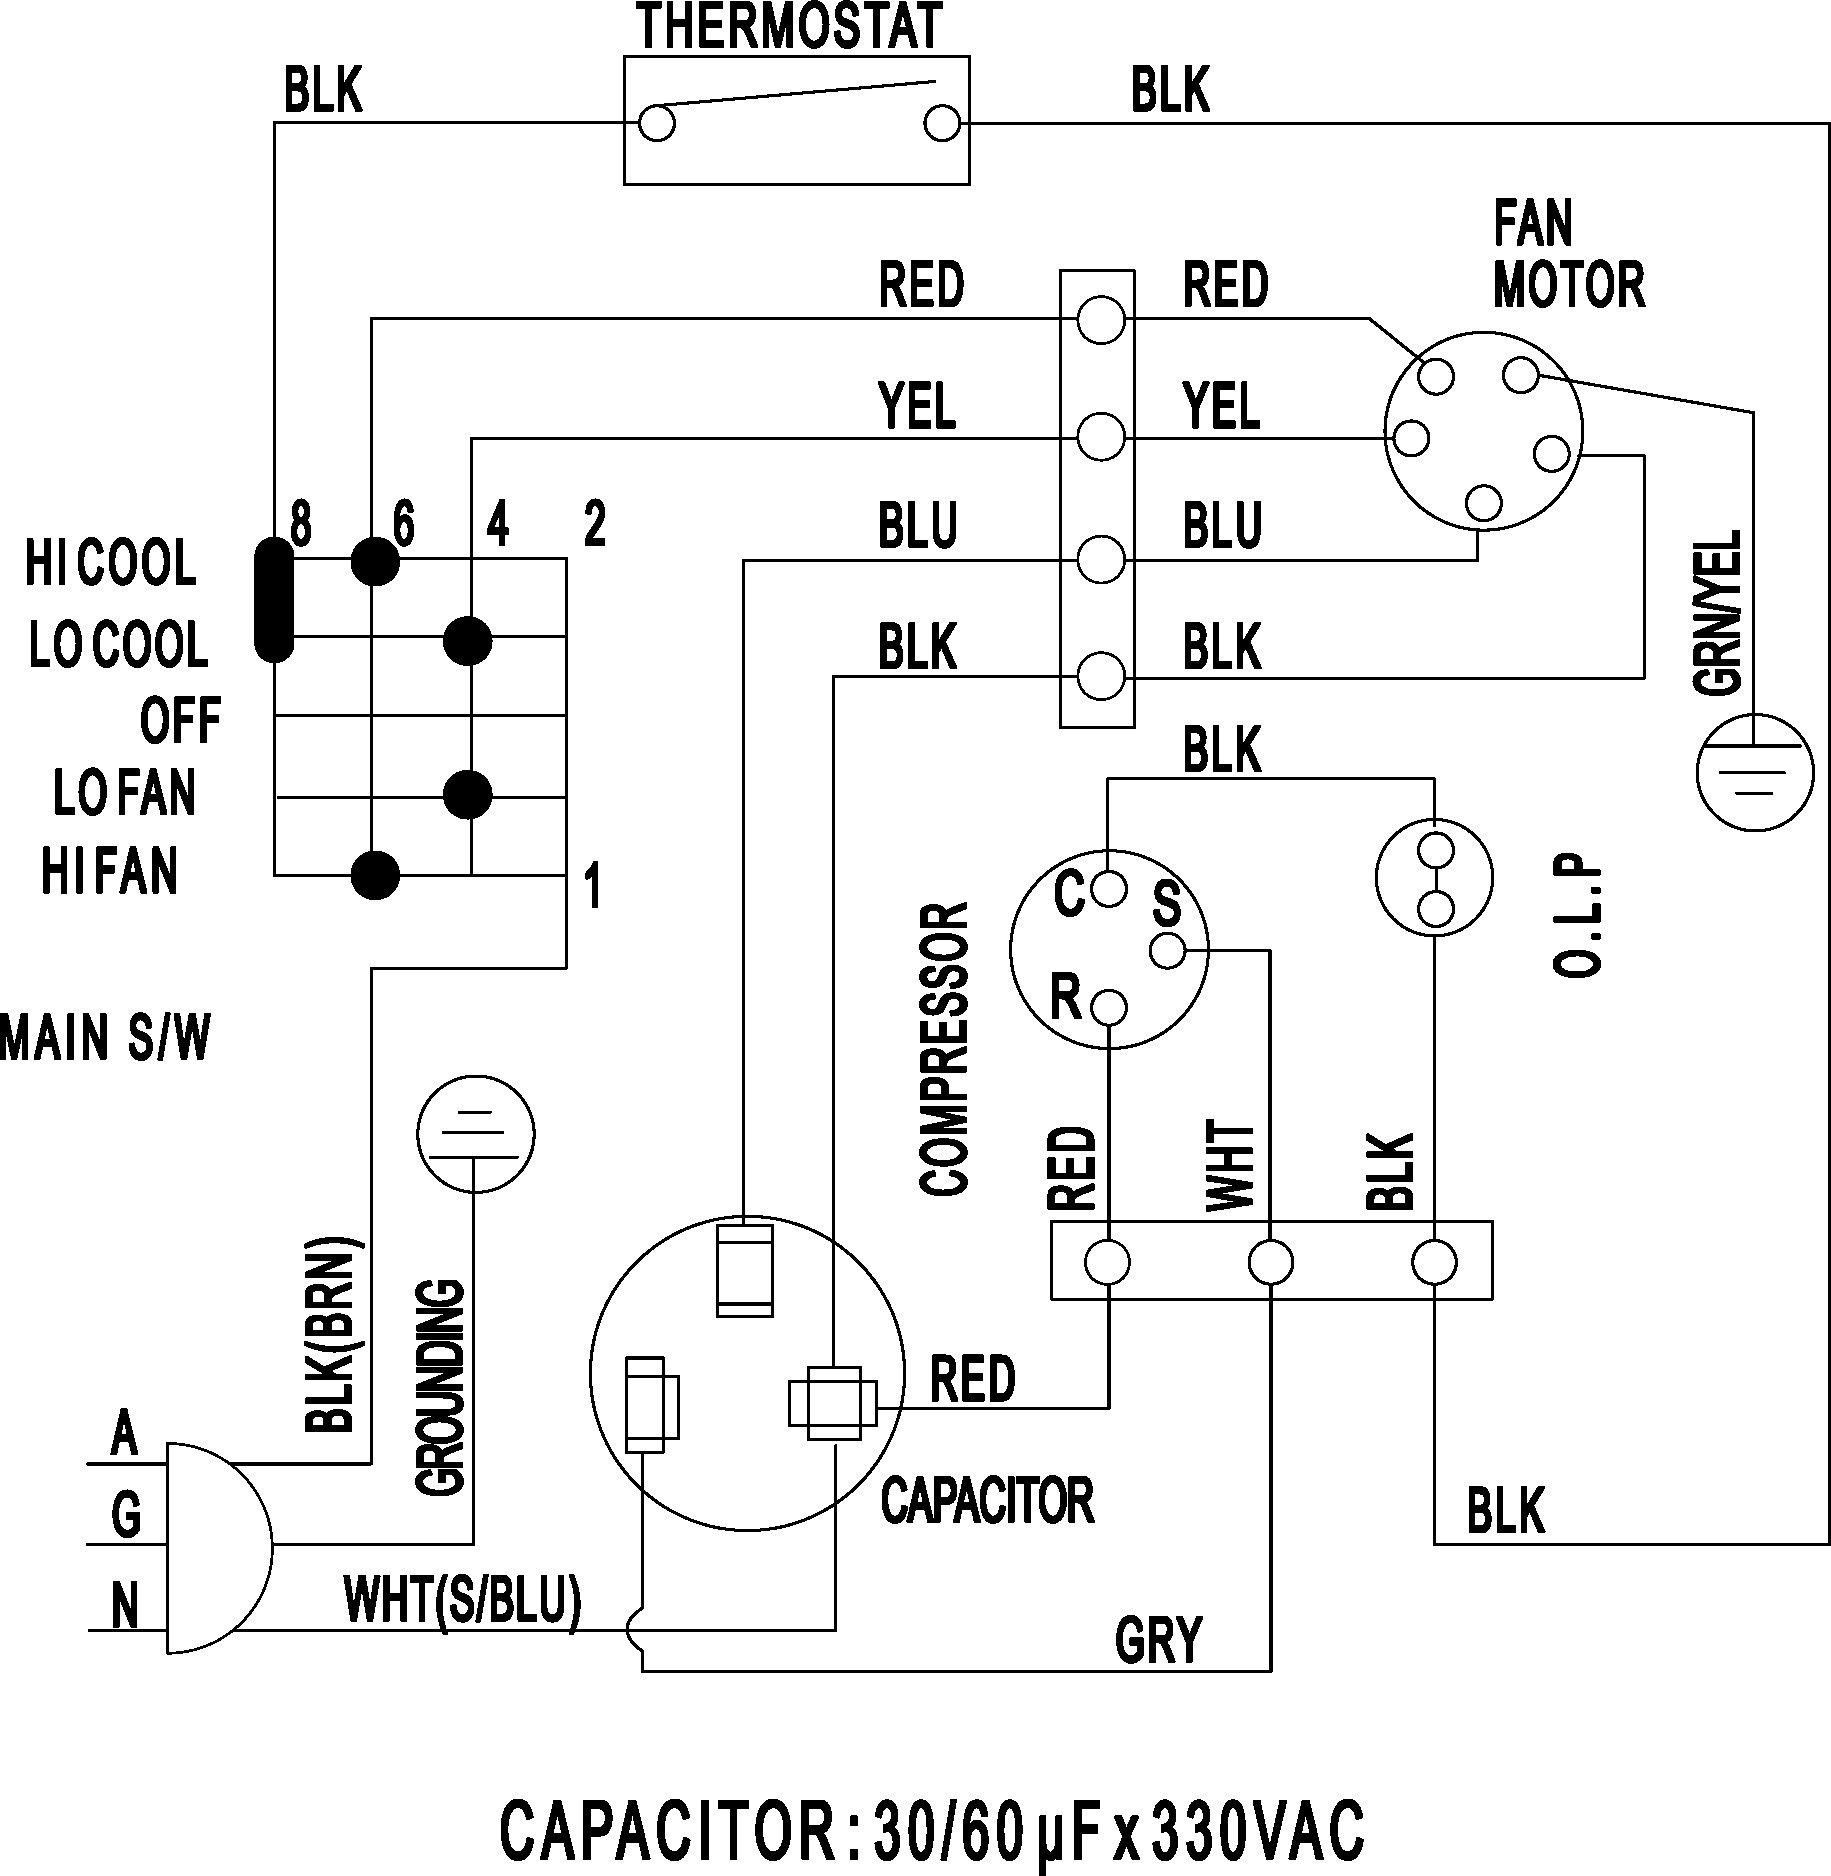 Unique Fan Relay Wiring Diagram Hvac Diagram Diagramsample Diagramtemplate Wiringdiagram Diagramchart W Electrical Circuit Diagram Ac Wiring Ac Capacitor